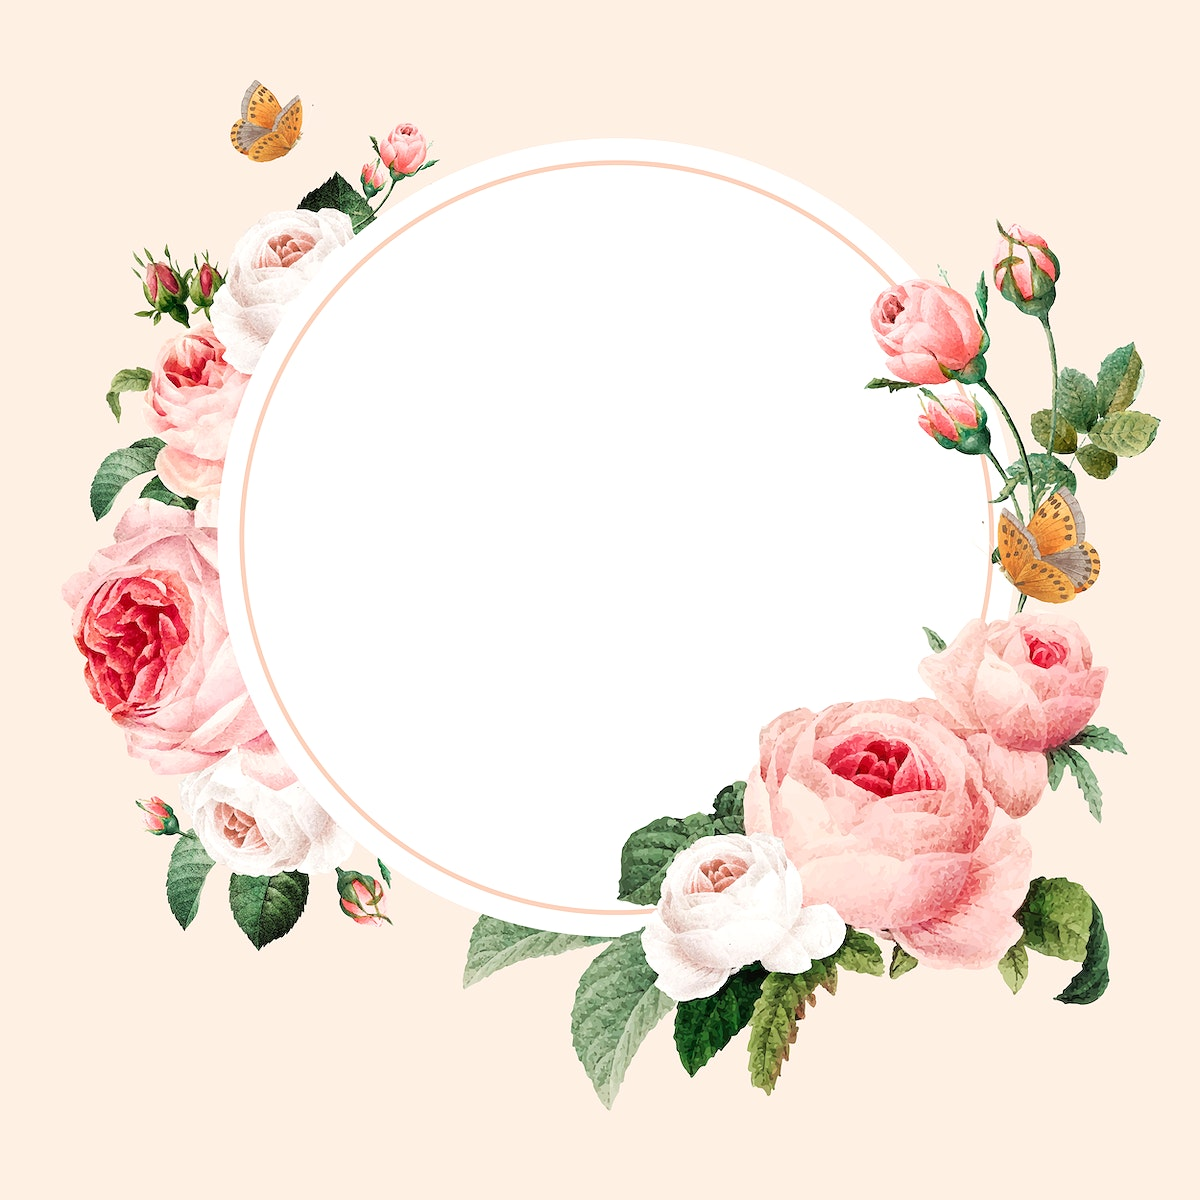 Blank floral round frame vector